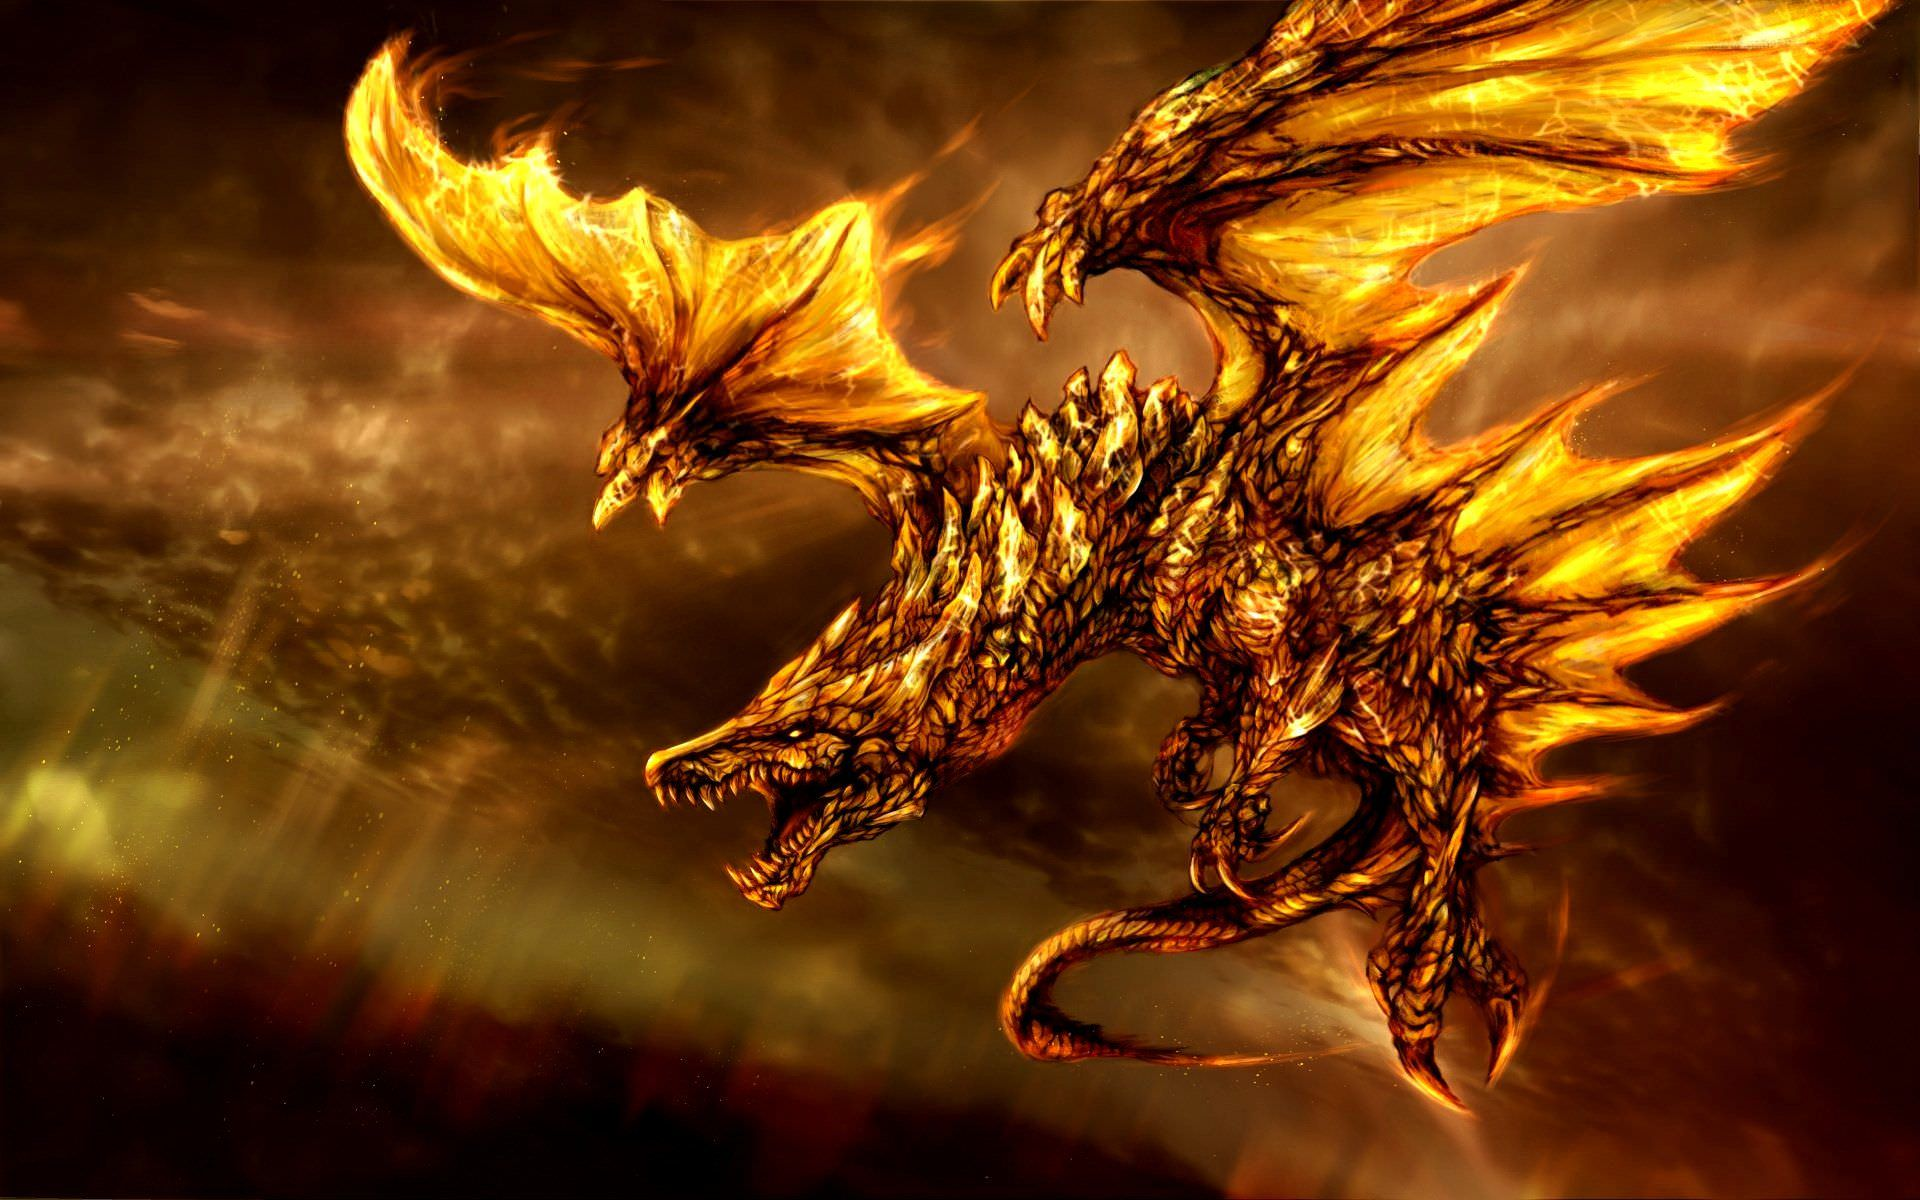 Elegant Wallpaper Of Dragon